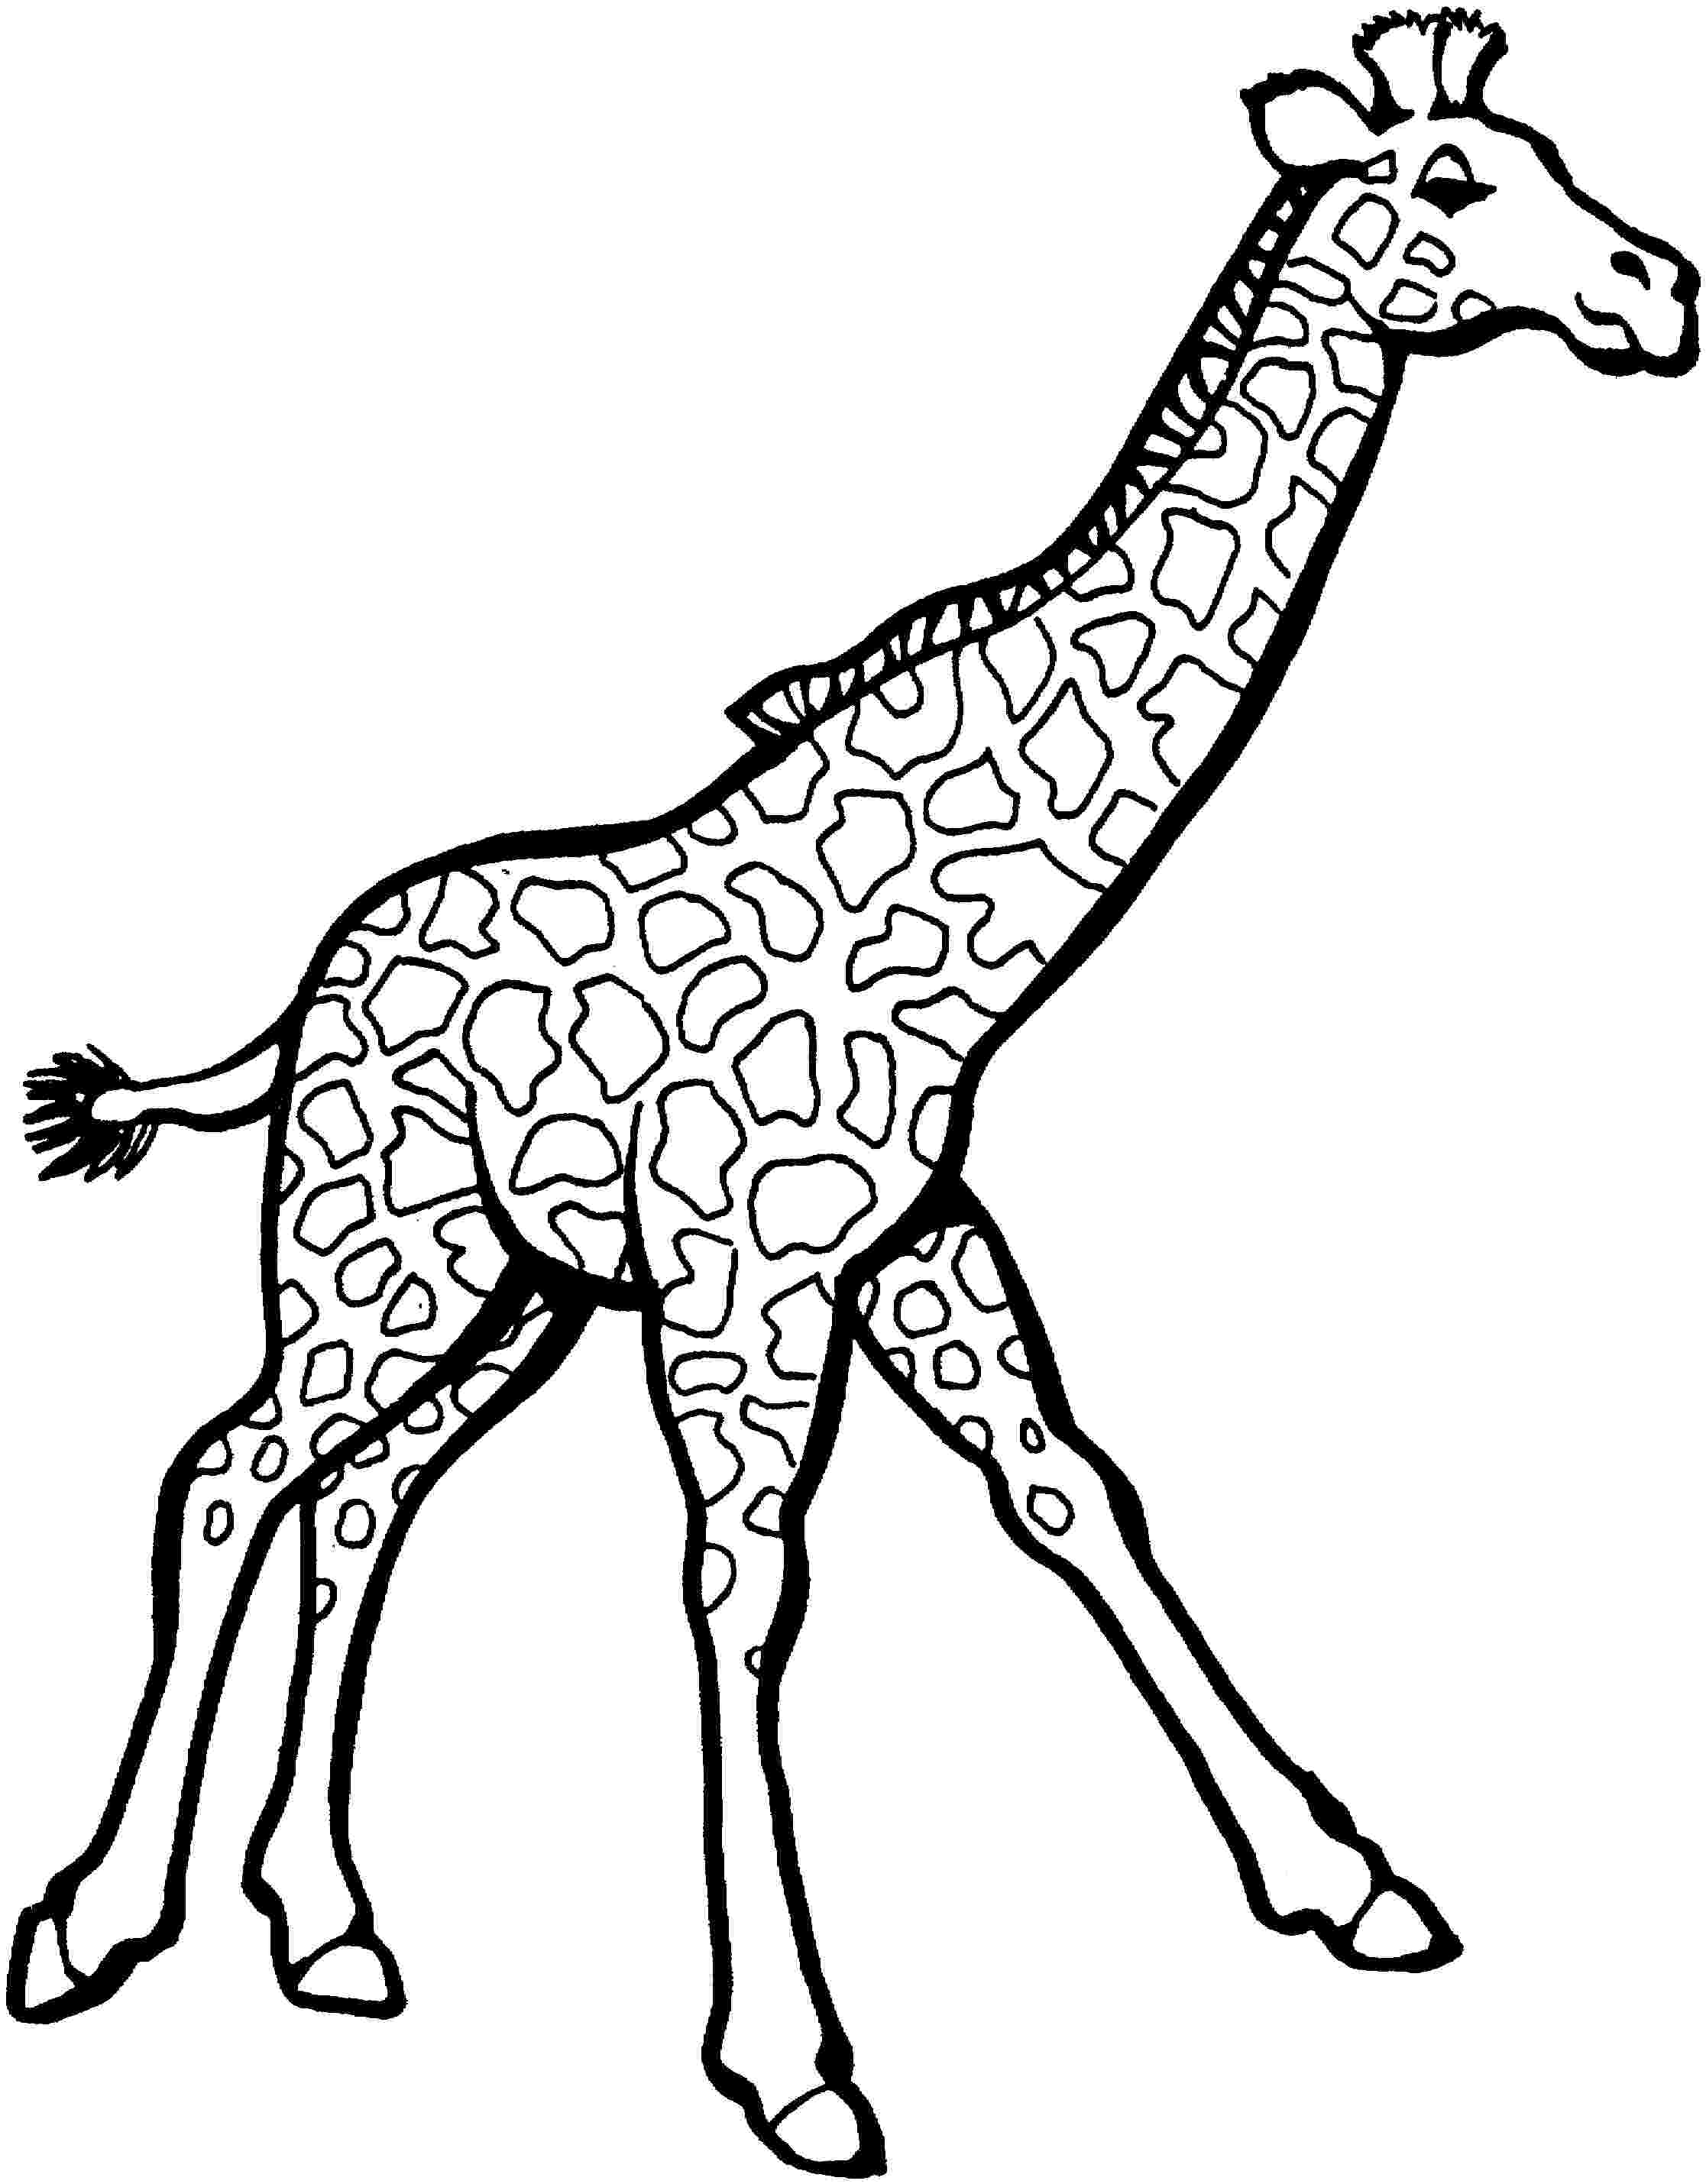 coloring pages giraffe free giraffe coloring pages coloring pages giraffe